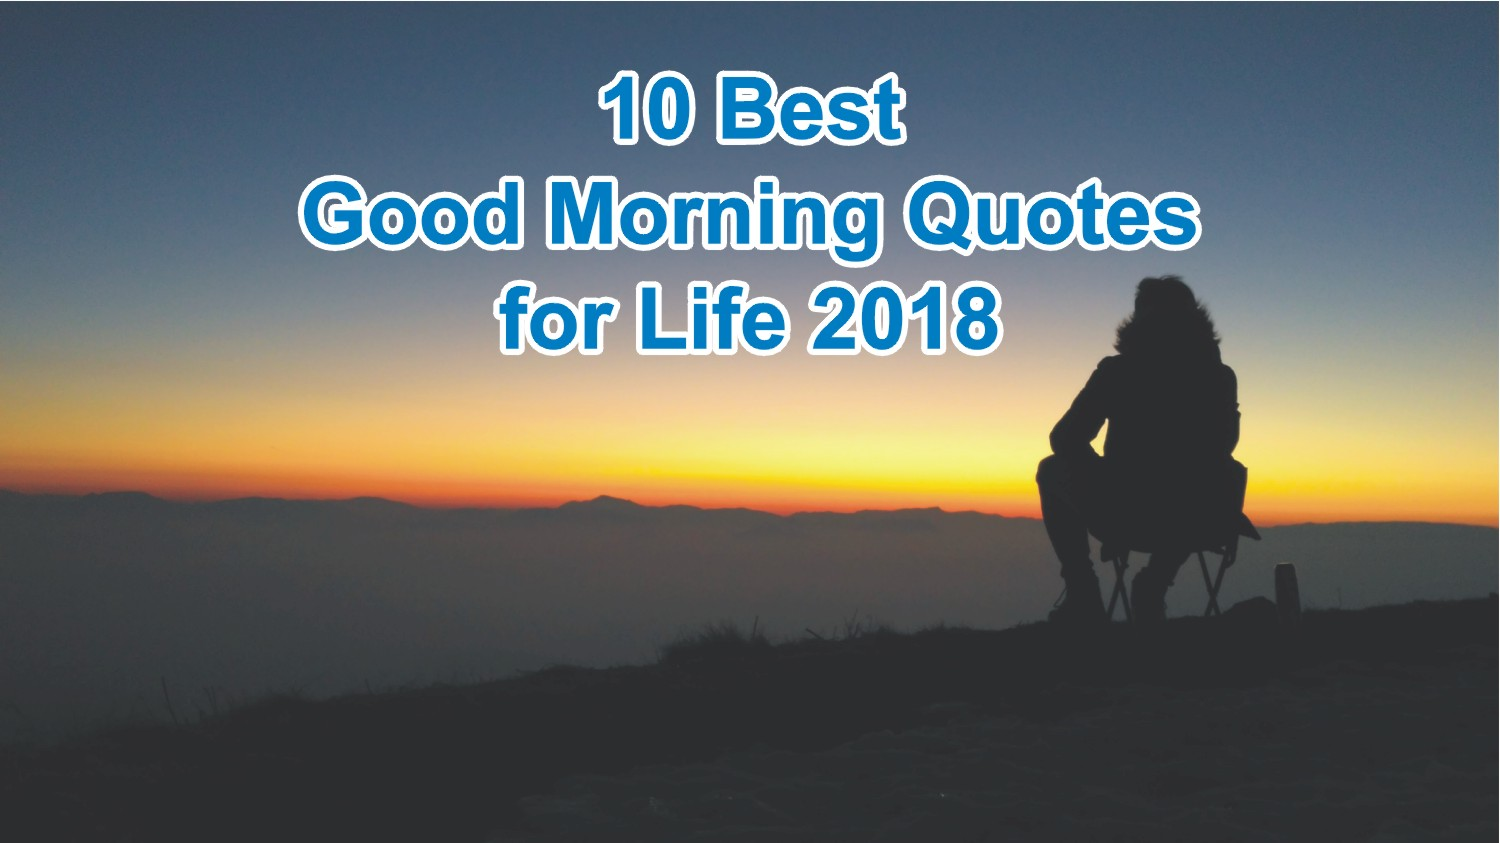 10 Best Good Morning Quotes For Life With Beautiful Images 2019